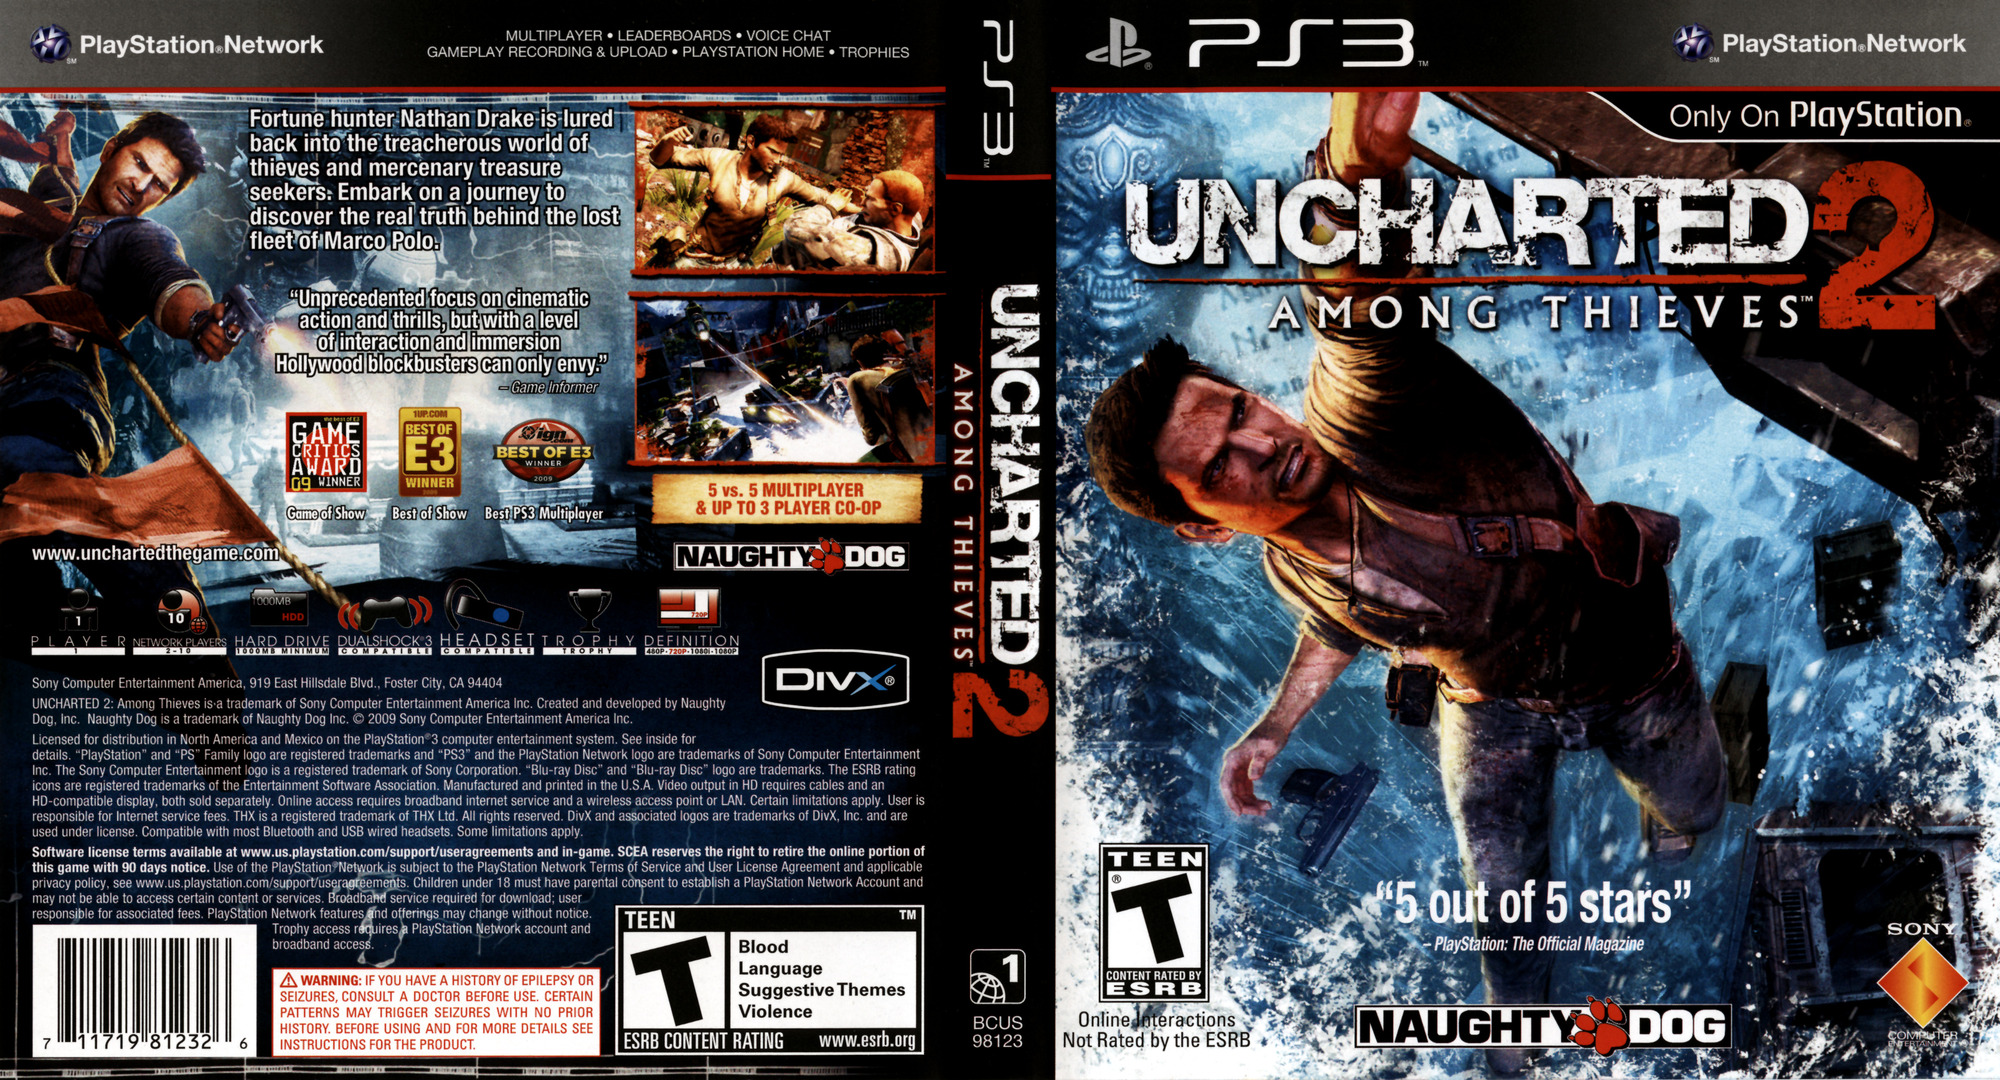 BCUS98123 - Uncharted 2: Among ThievesUncharted 2 Among Thieves Cover